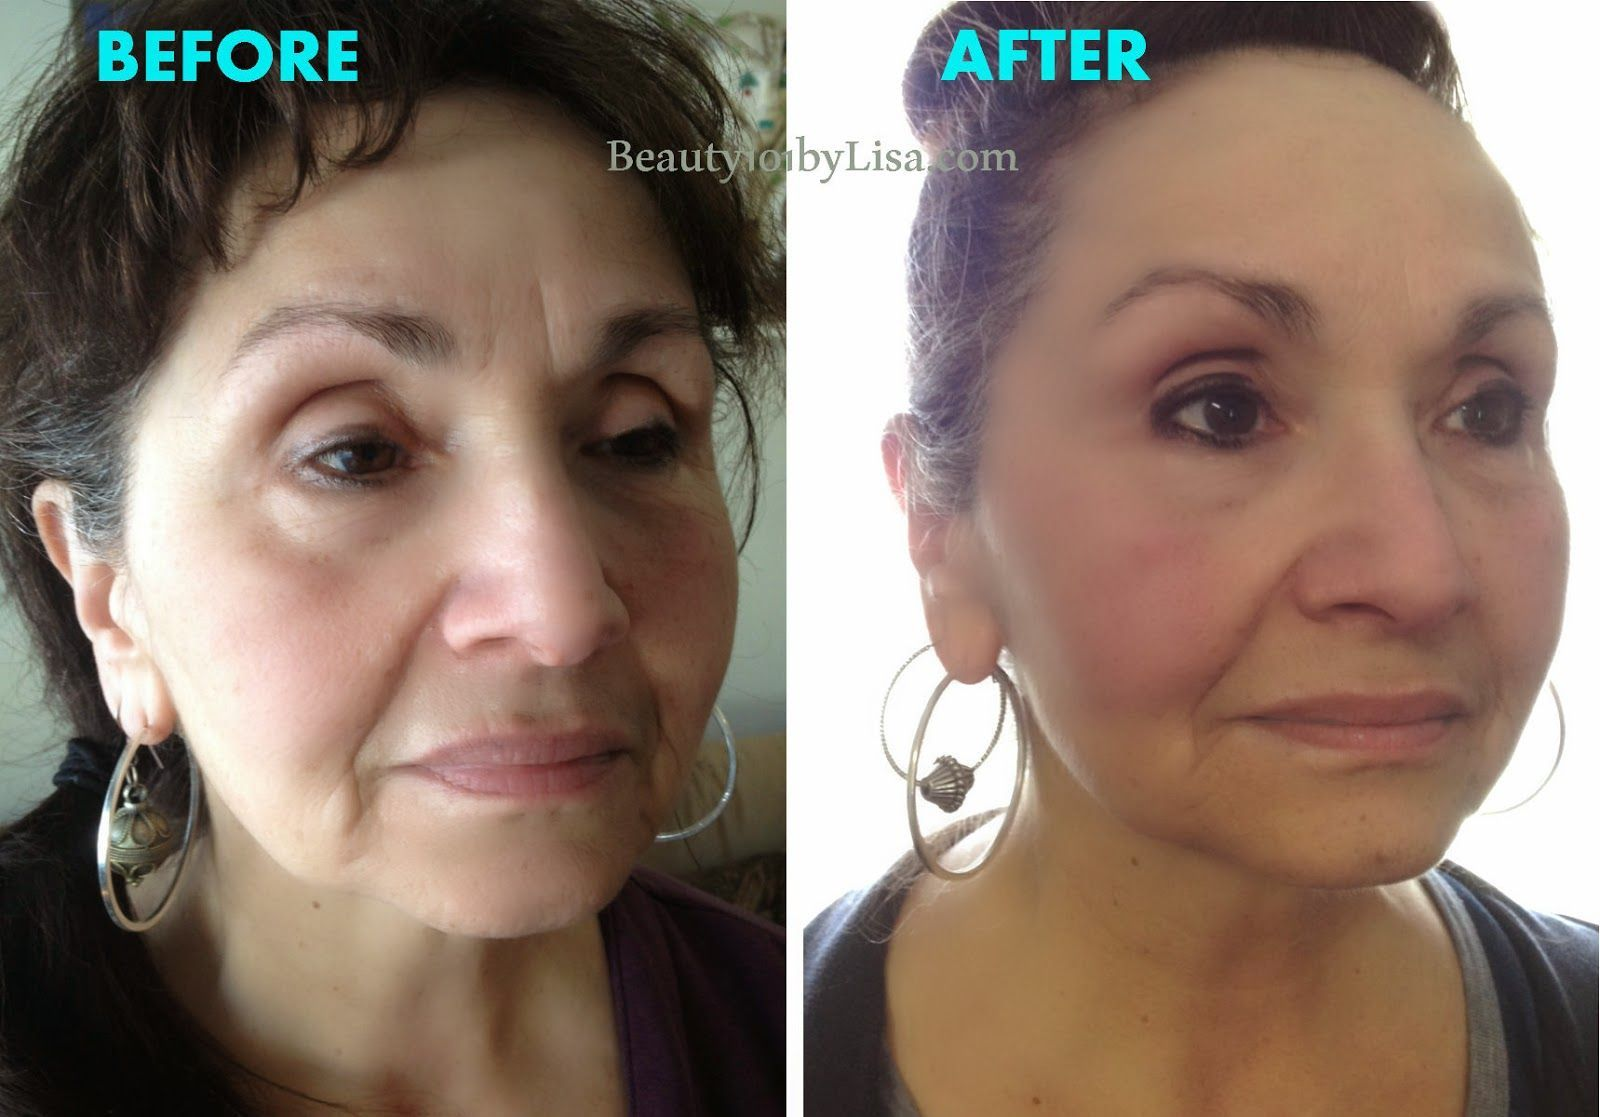 Vitamin B3 Cream Botox In A Bottle Before And After Results Anti Aging Reverse The Signs Anti Aging Beauty Secrets Skin Care Recommended Skin Care Products